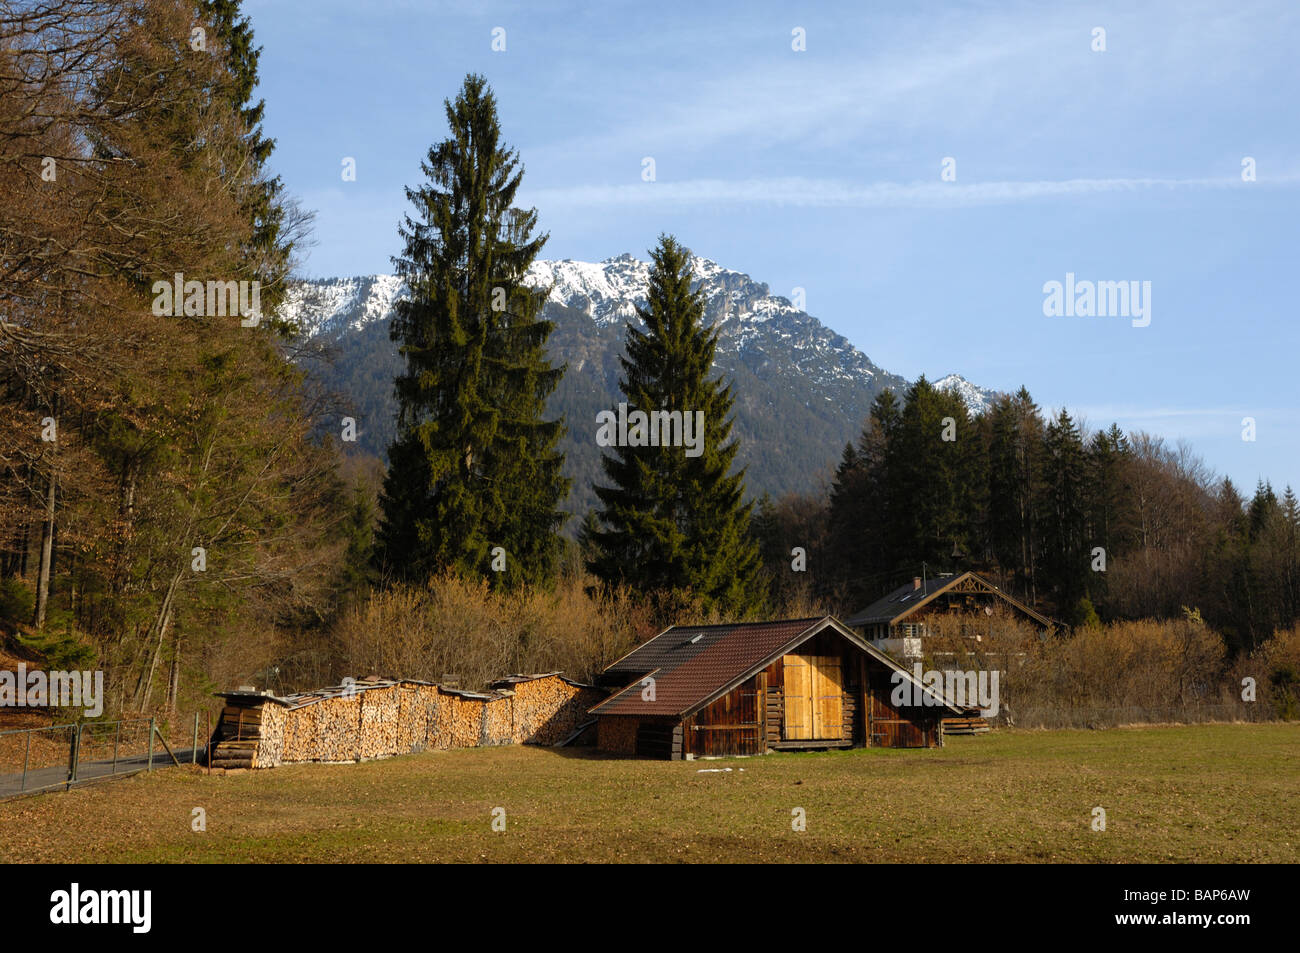 Typical barn and wood stack, Grainau, near Garmisch-Partenkirchen, Bavaria, Germany - Stock Image